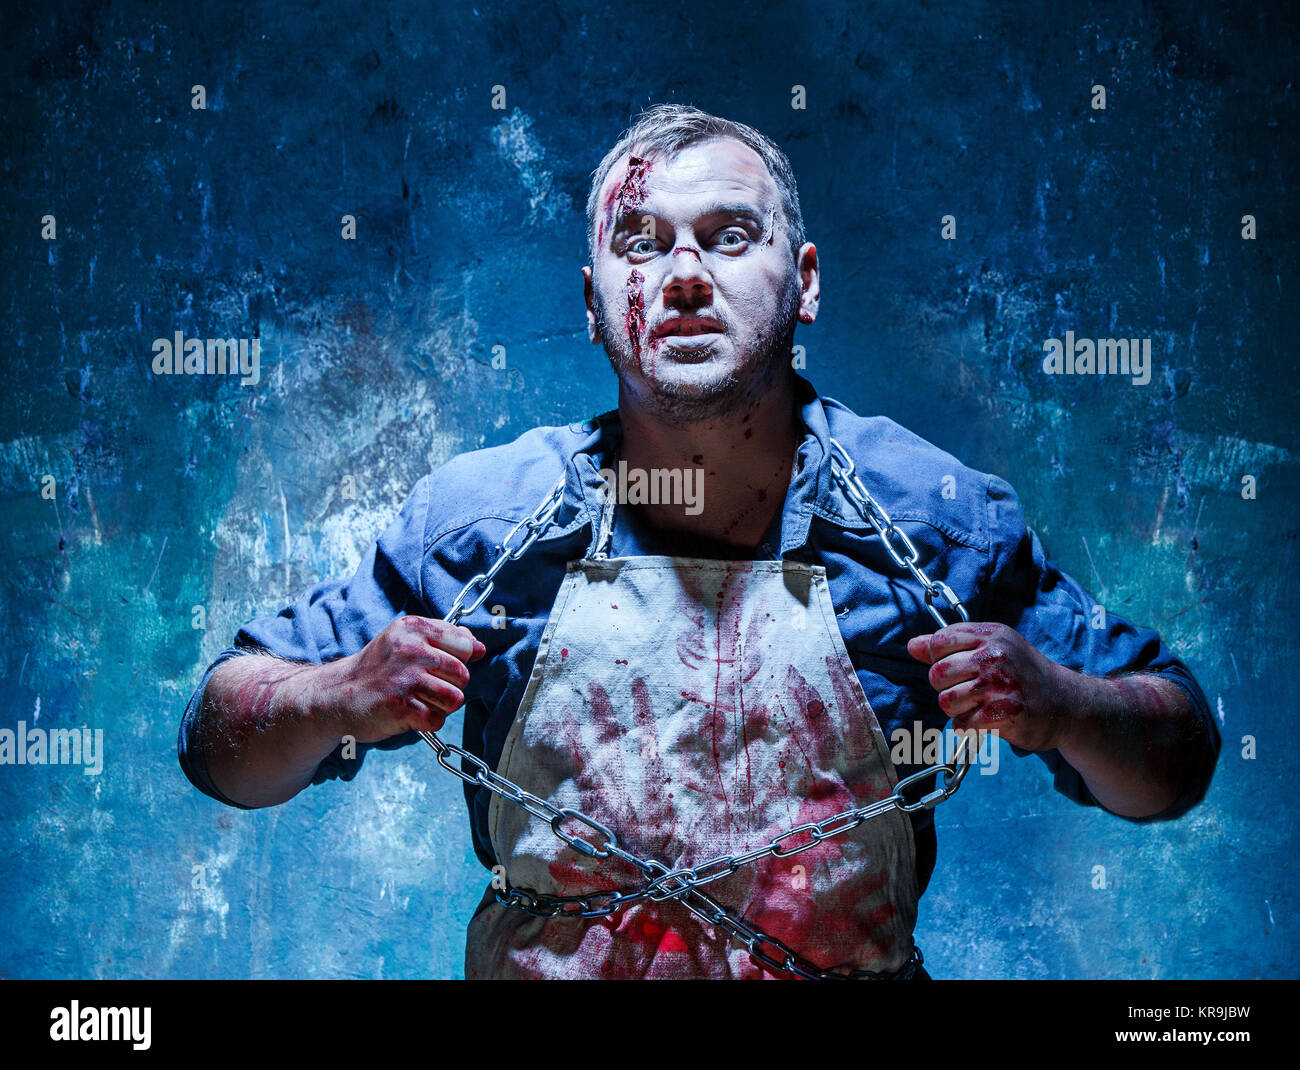 Bloody Halloween theme: crazy killer as butcher - Stock Image